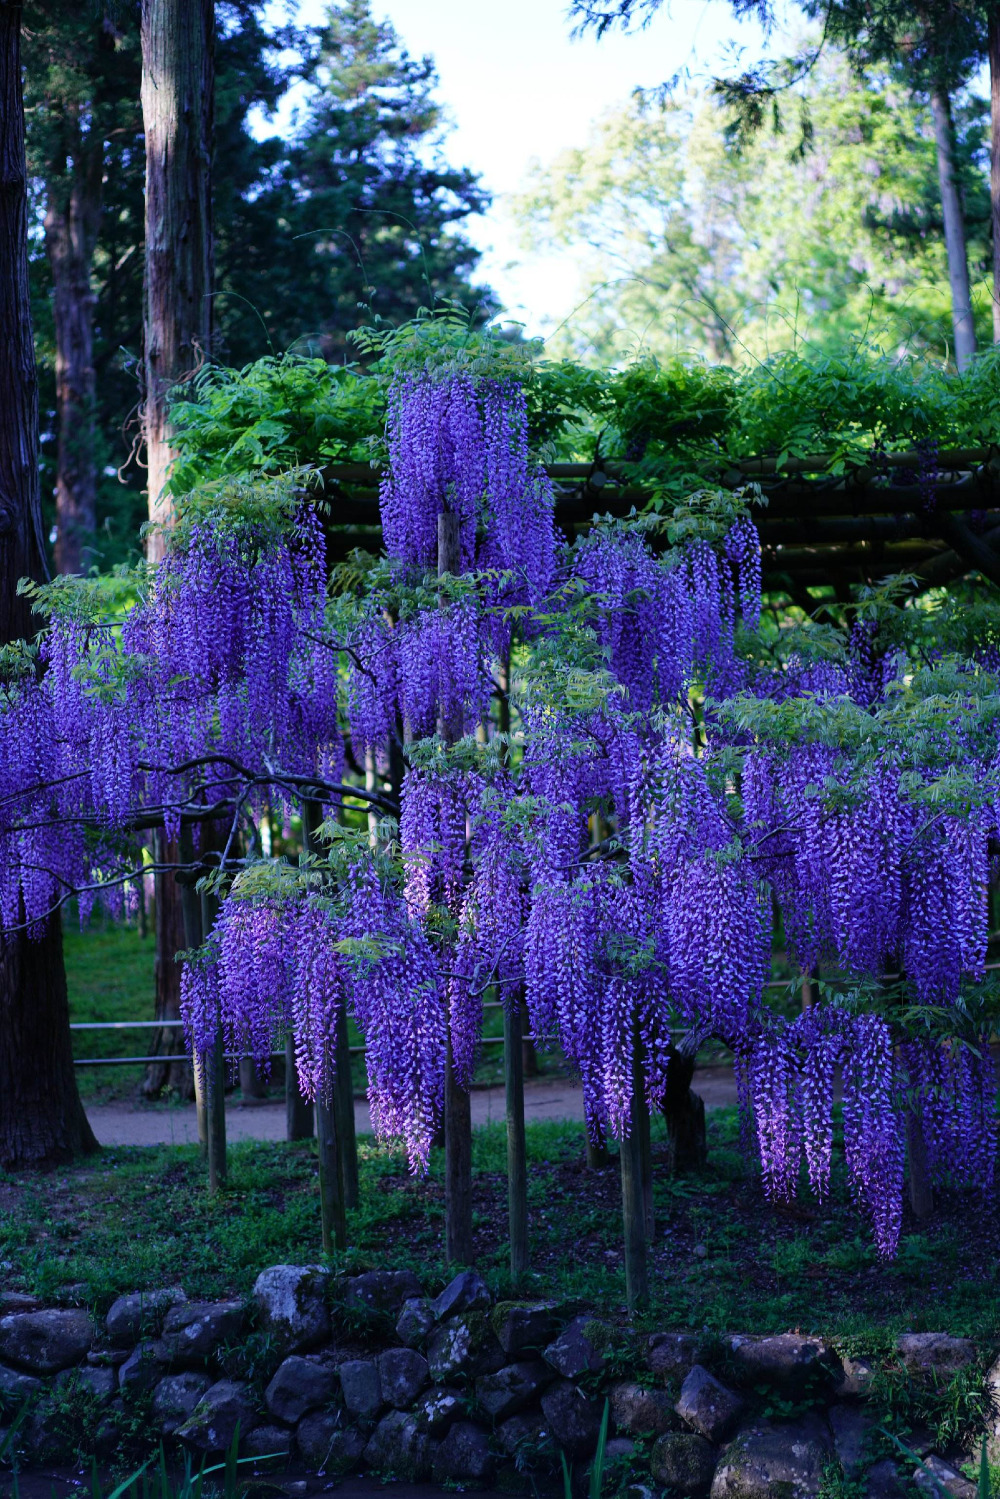 Large climbing wicker plant 10pc blue purple wisteria tree seed large climbing wicker plant 10pc blue purple wisteria tree seed garden most beautiful flowers in bonsai from home garden on aliexpress alibaba izmirmasajfo Images